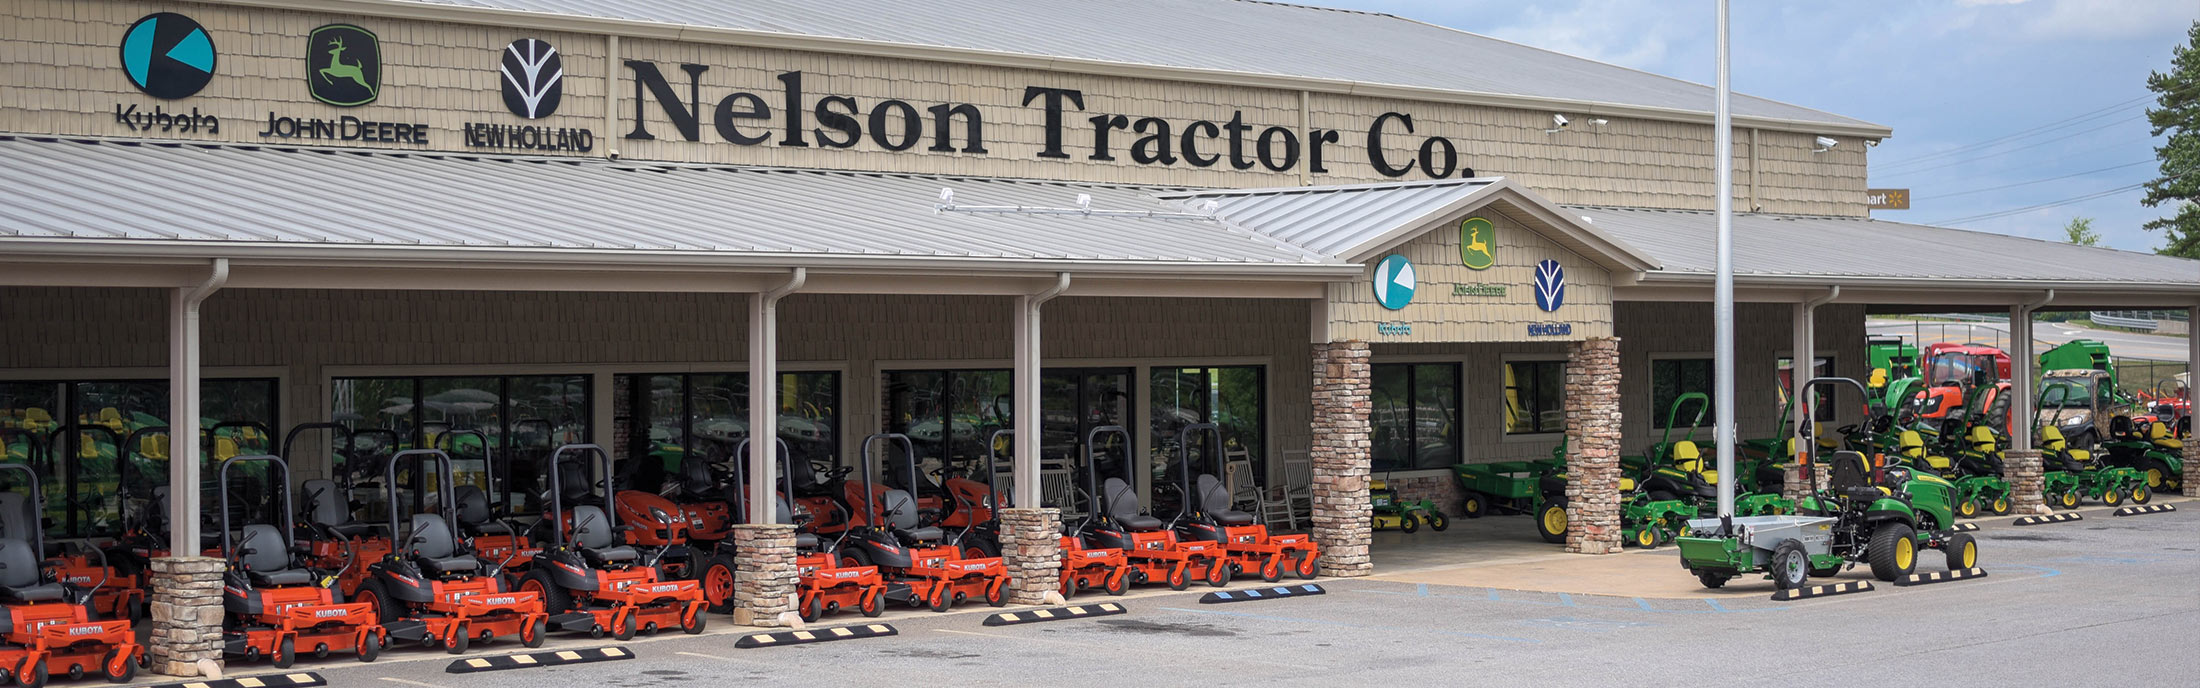 Nelson Tractor Company Dealership in Blairsville, GA